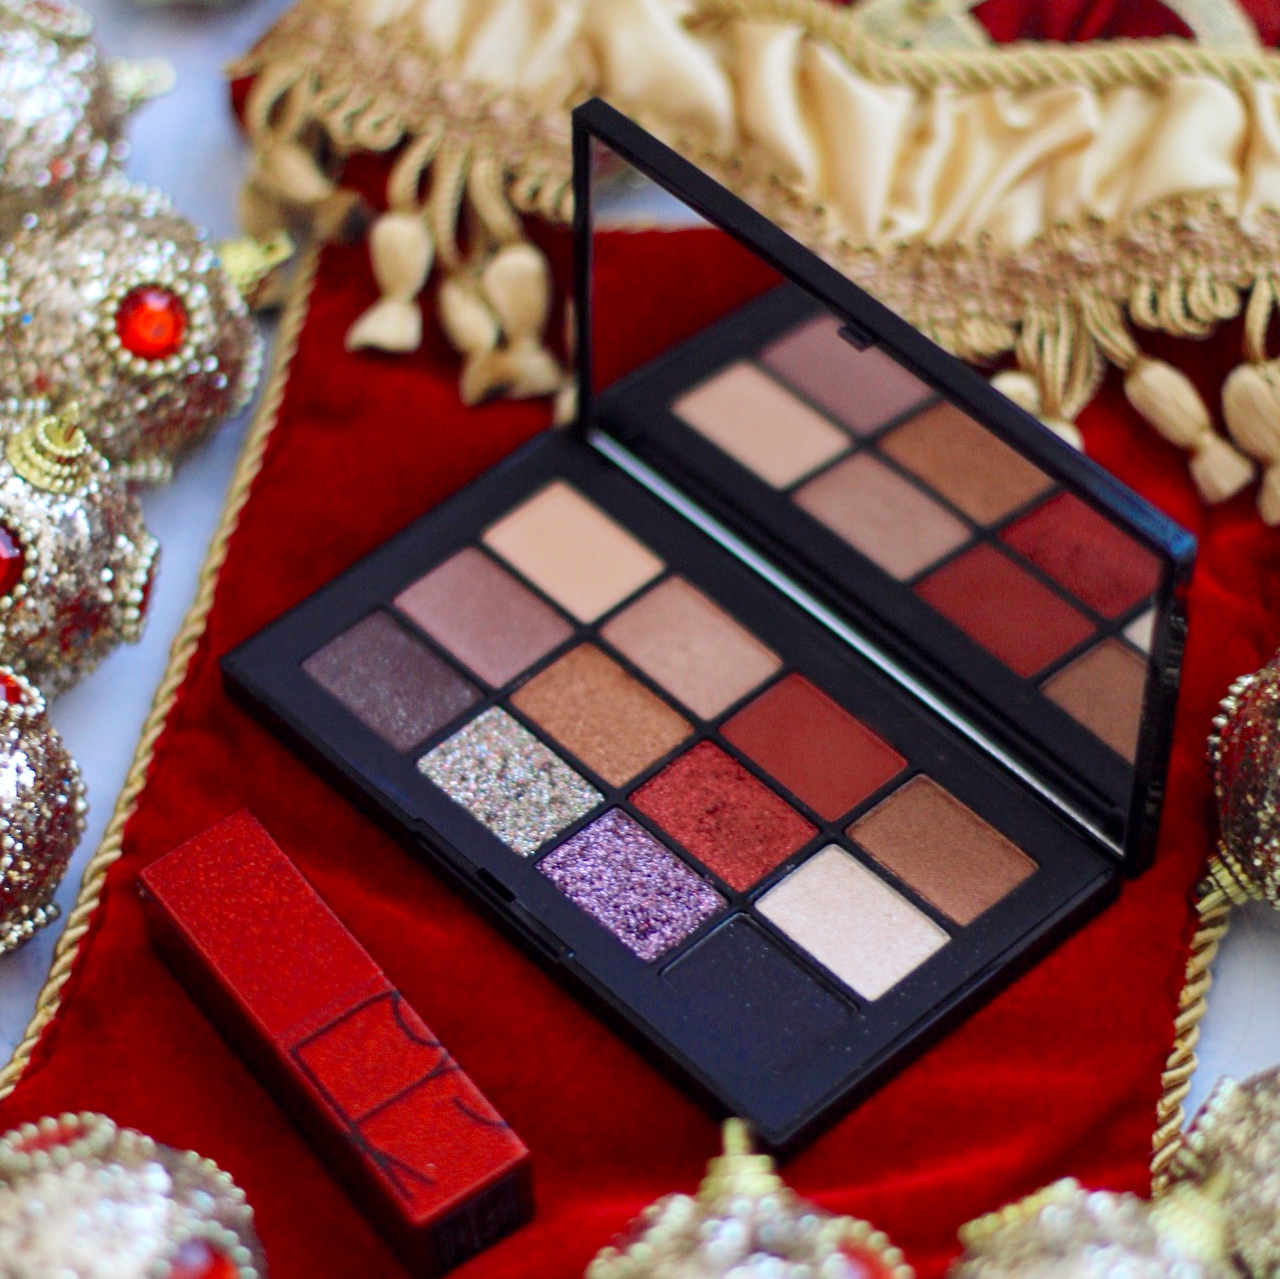 NARS Studio 54 Holiday Collection Inferno Palette